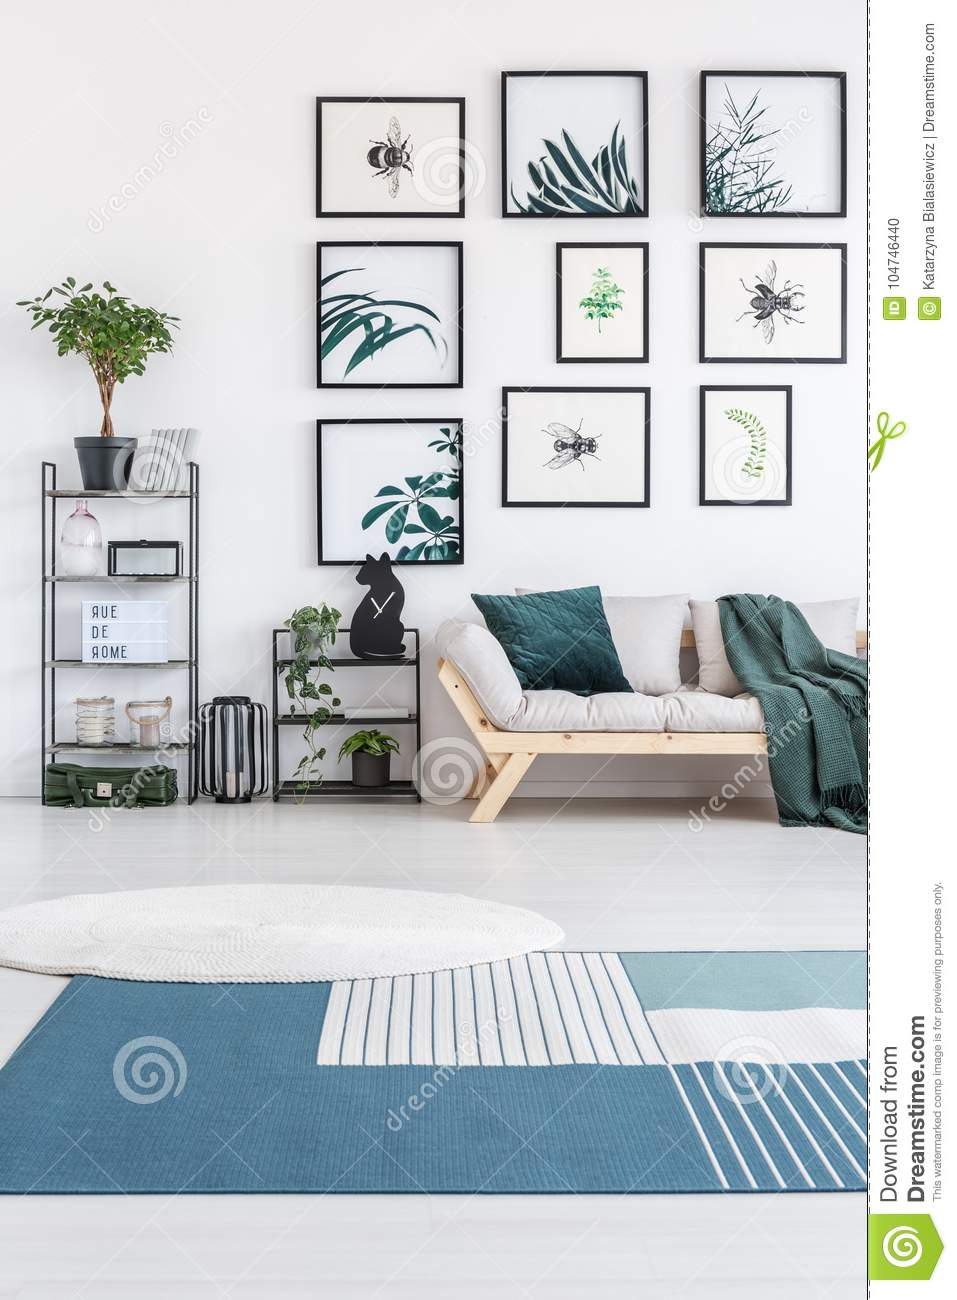 Blue and white carpet stock photo. Image of green, bedroom - 104746440